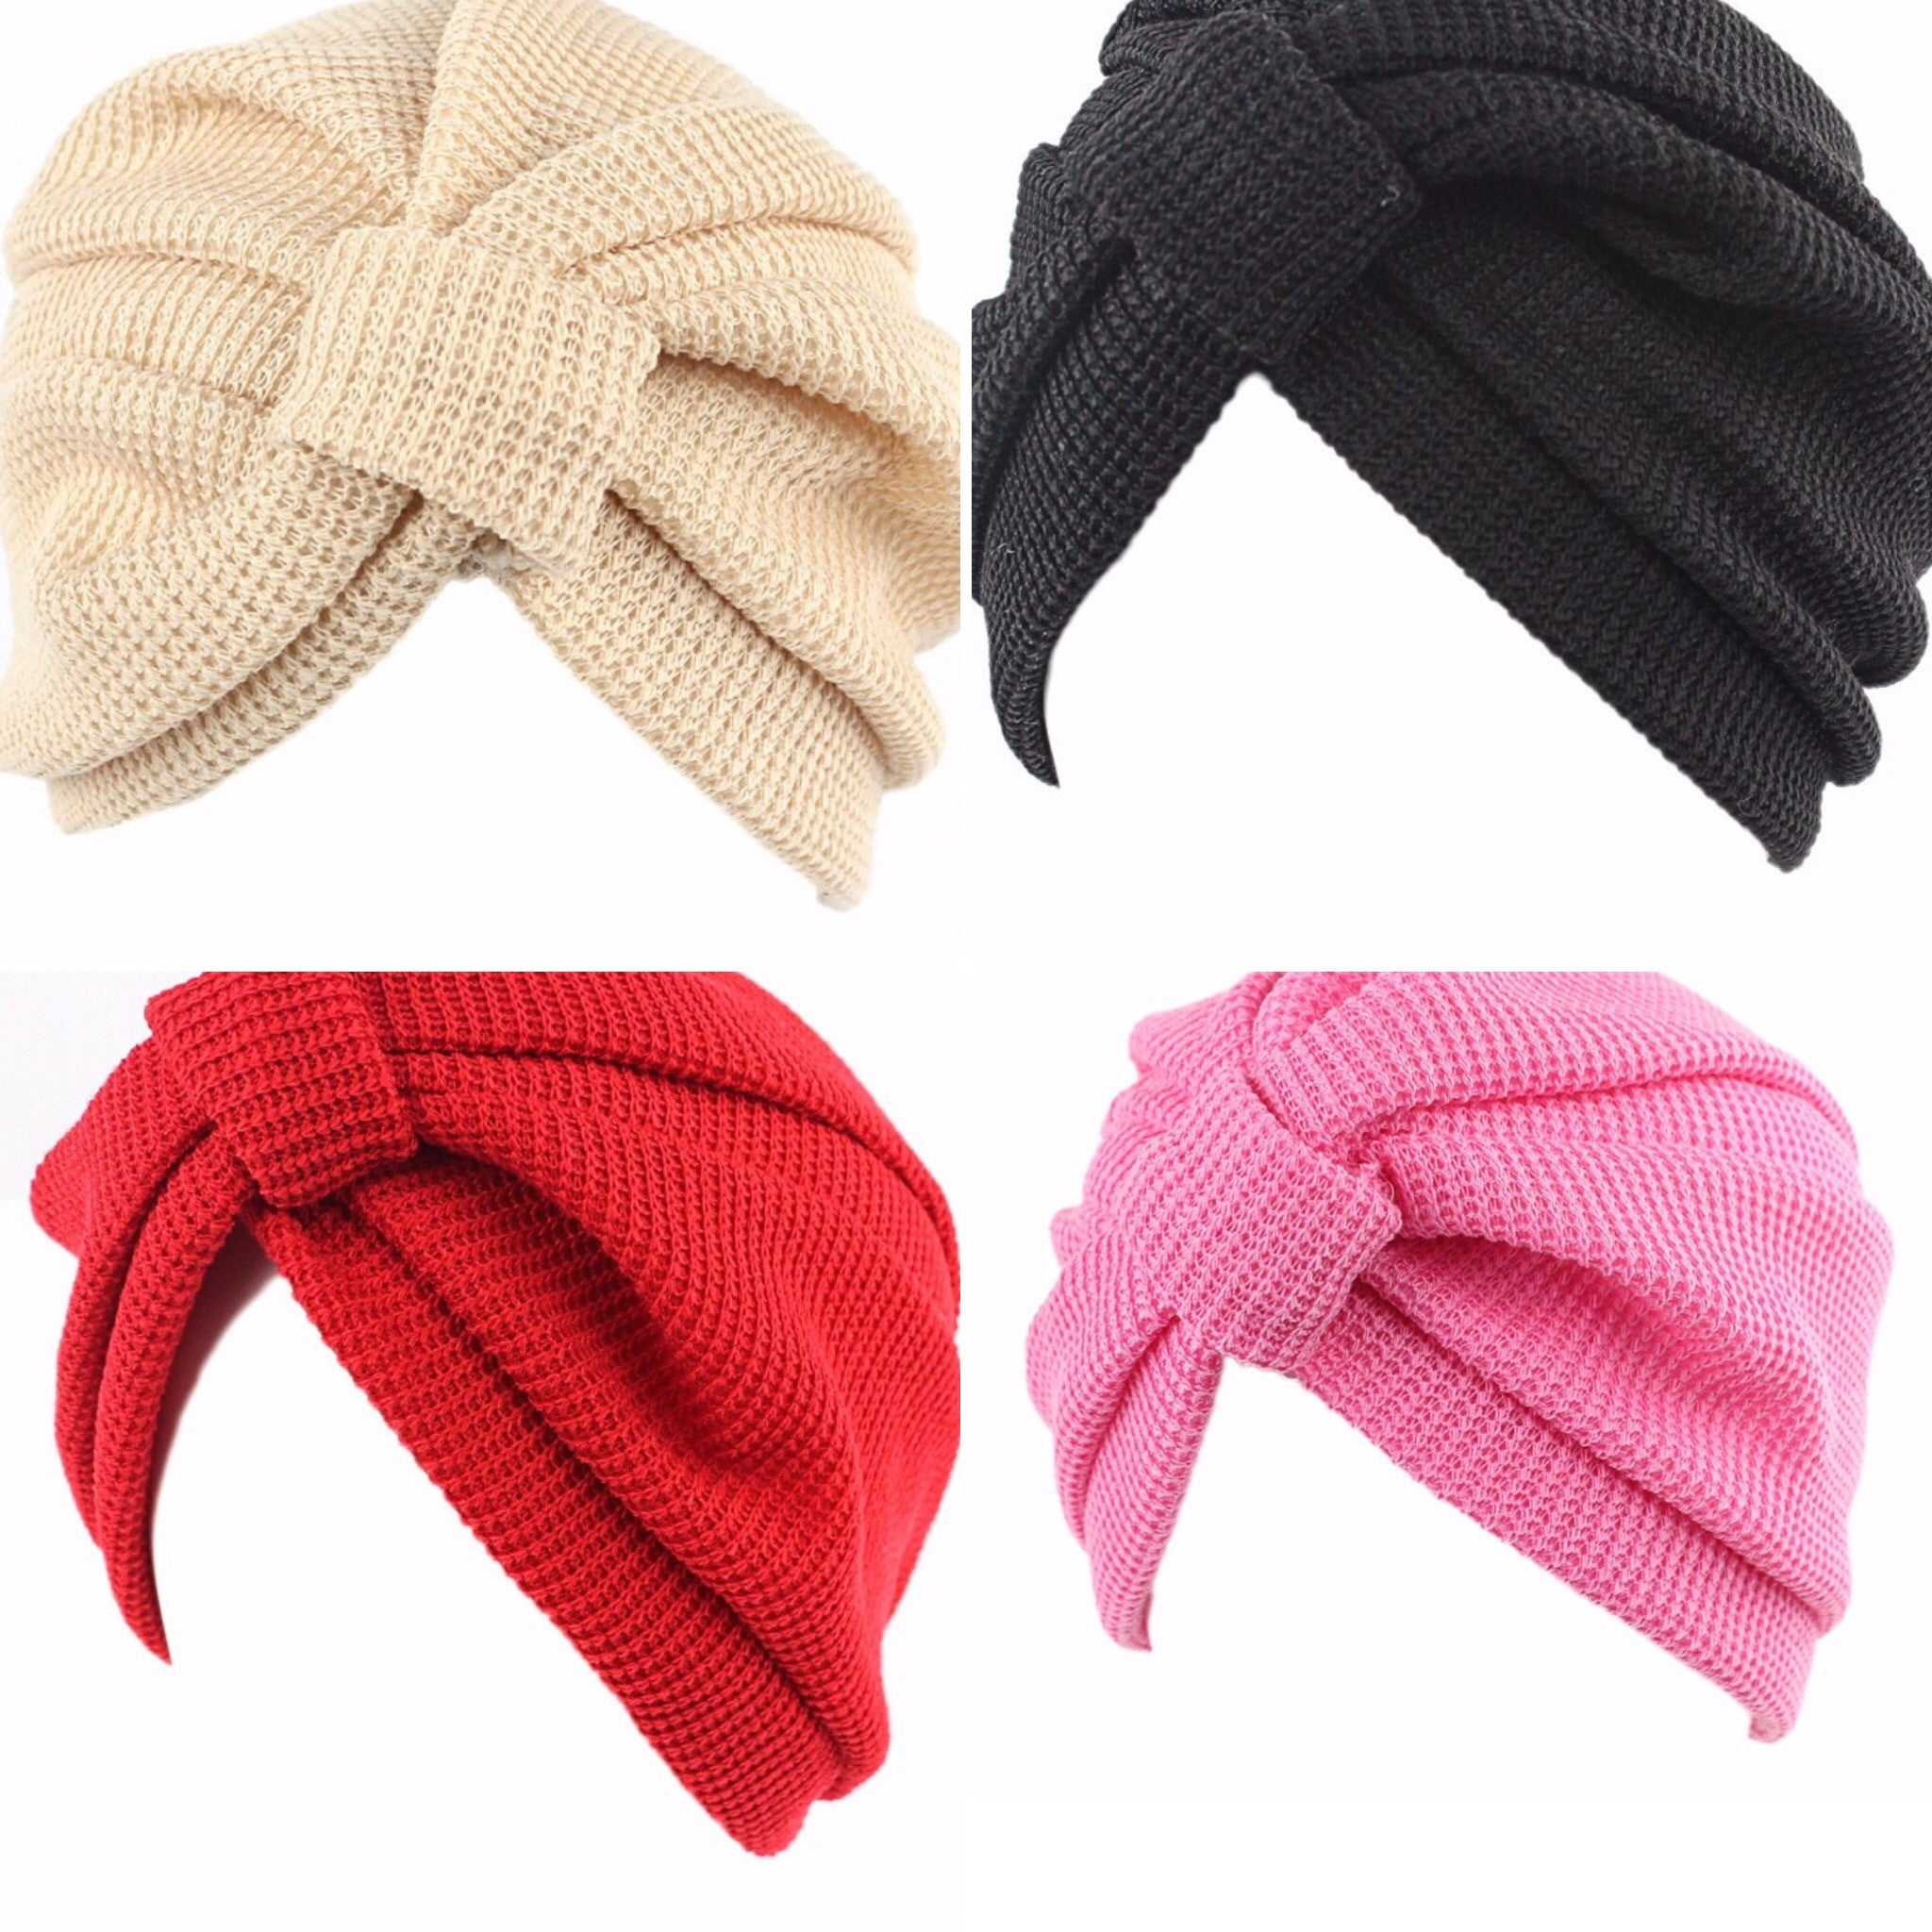 Knit Turbans